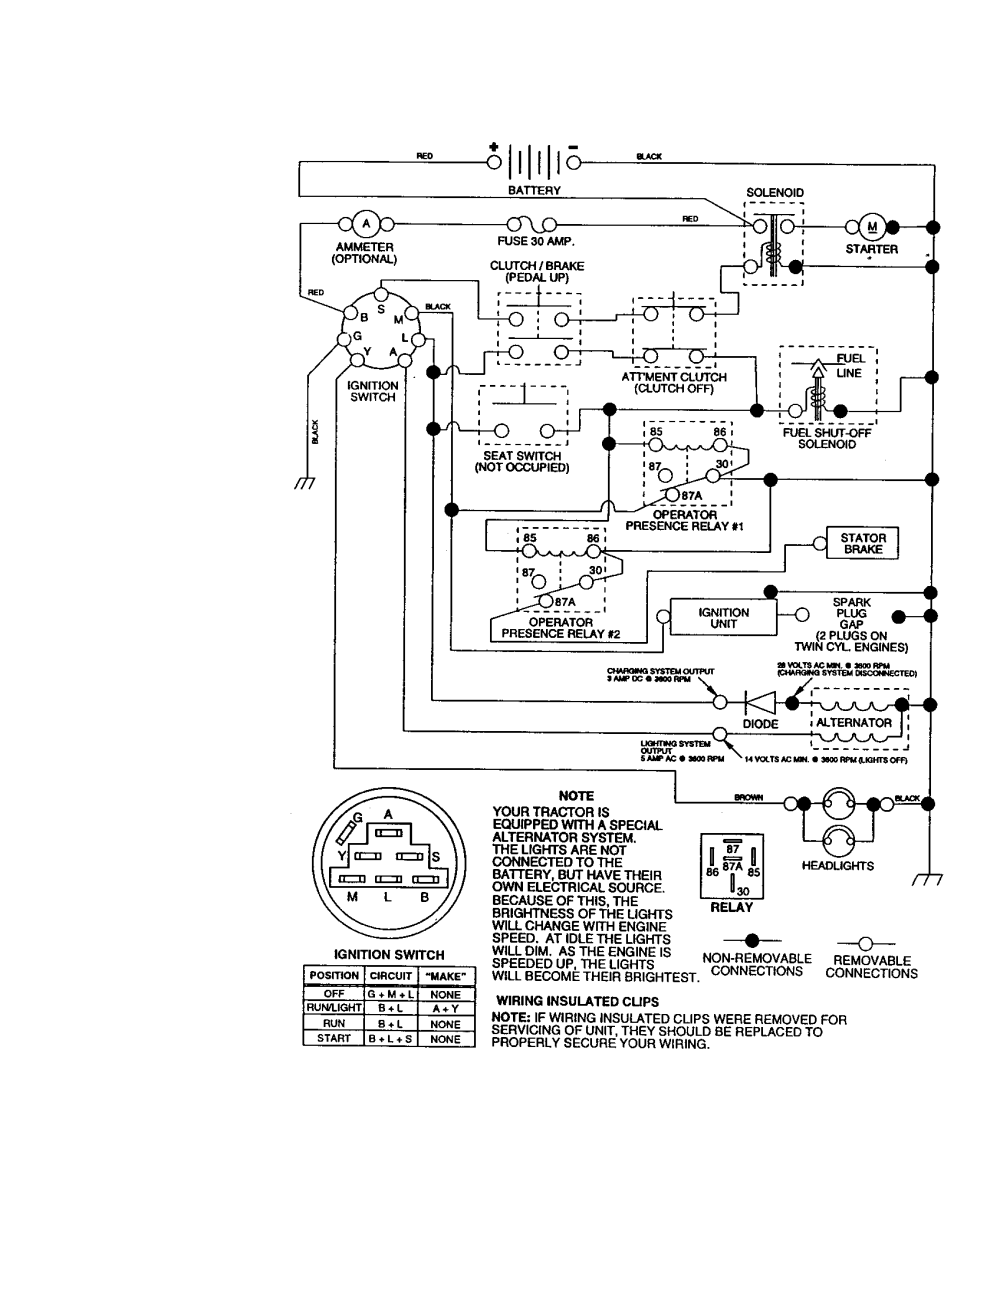 medium resolution of kohler engine ignition wiring diagram